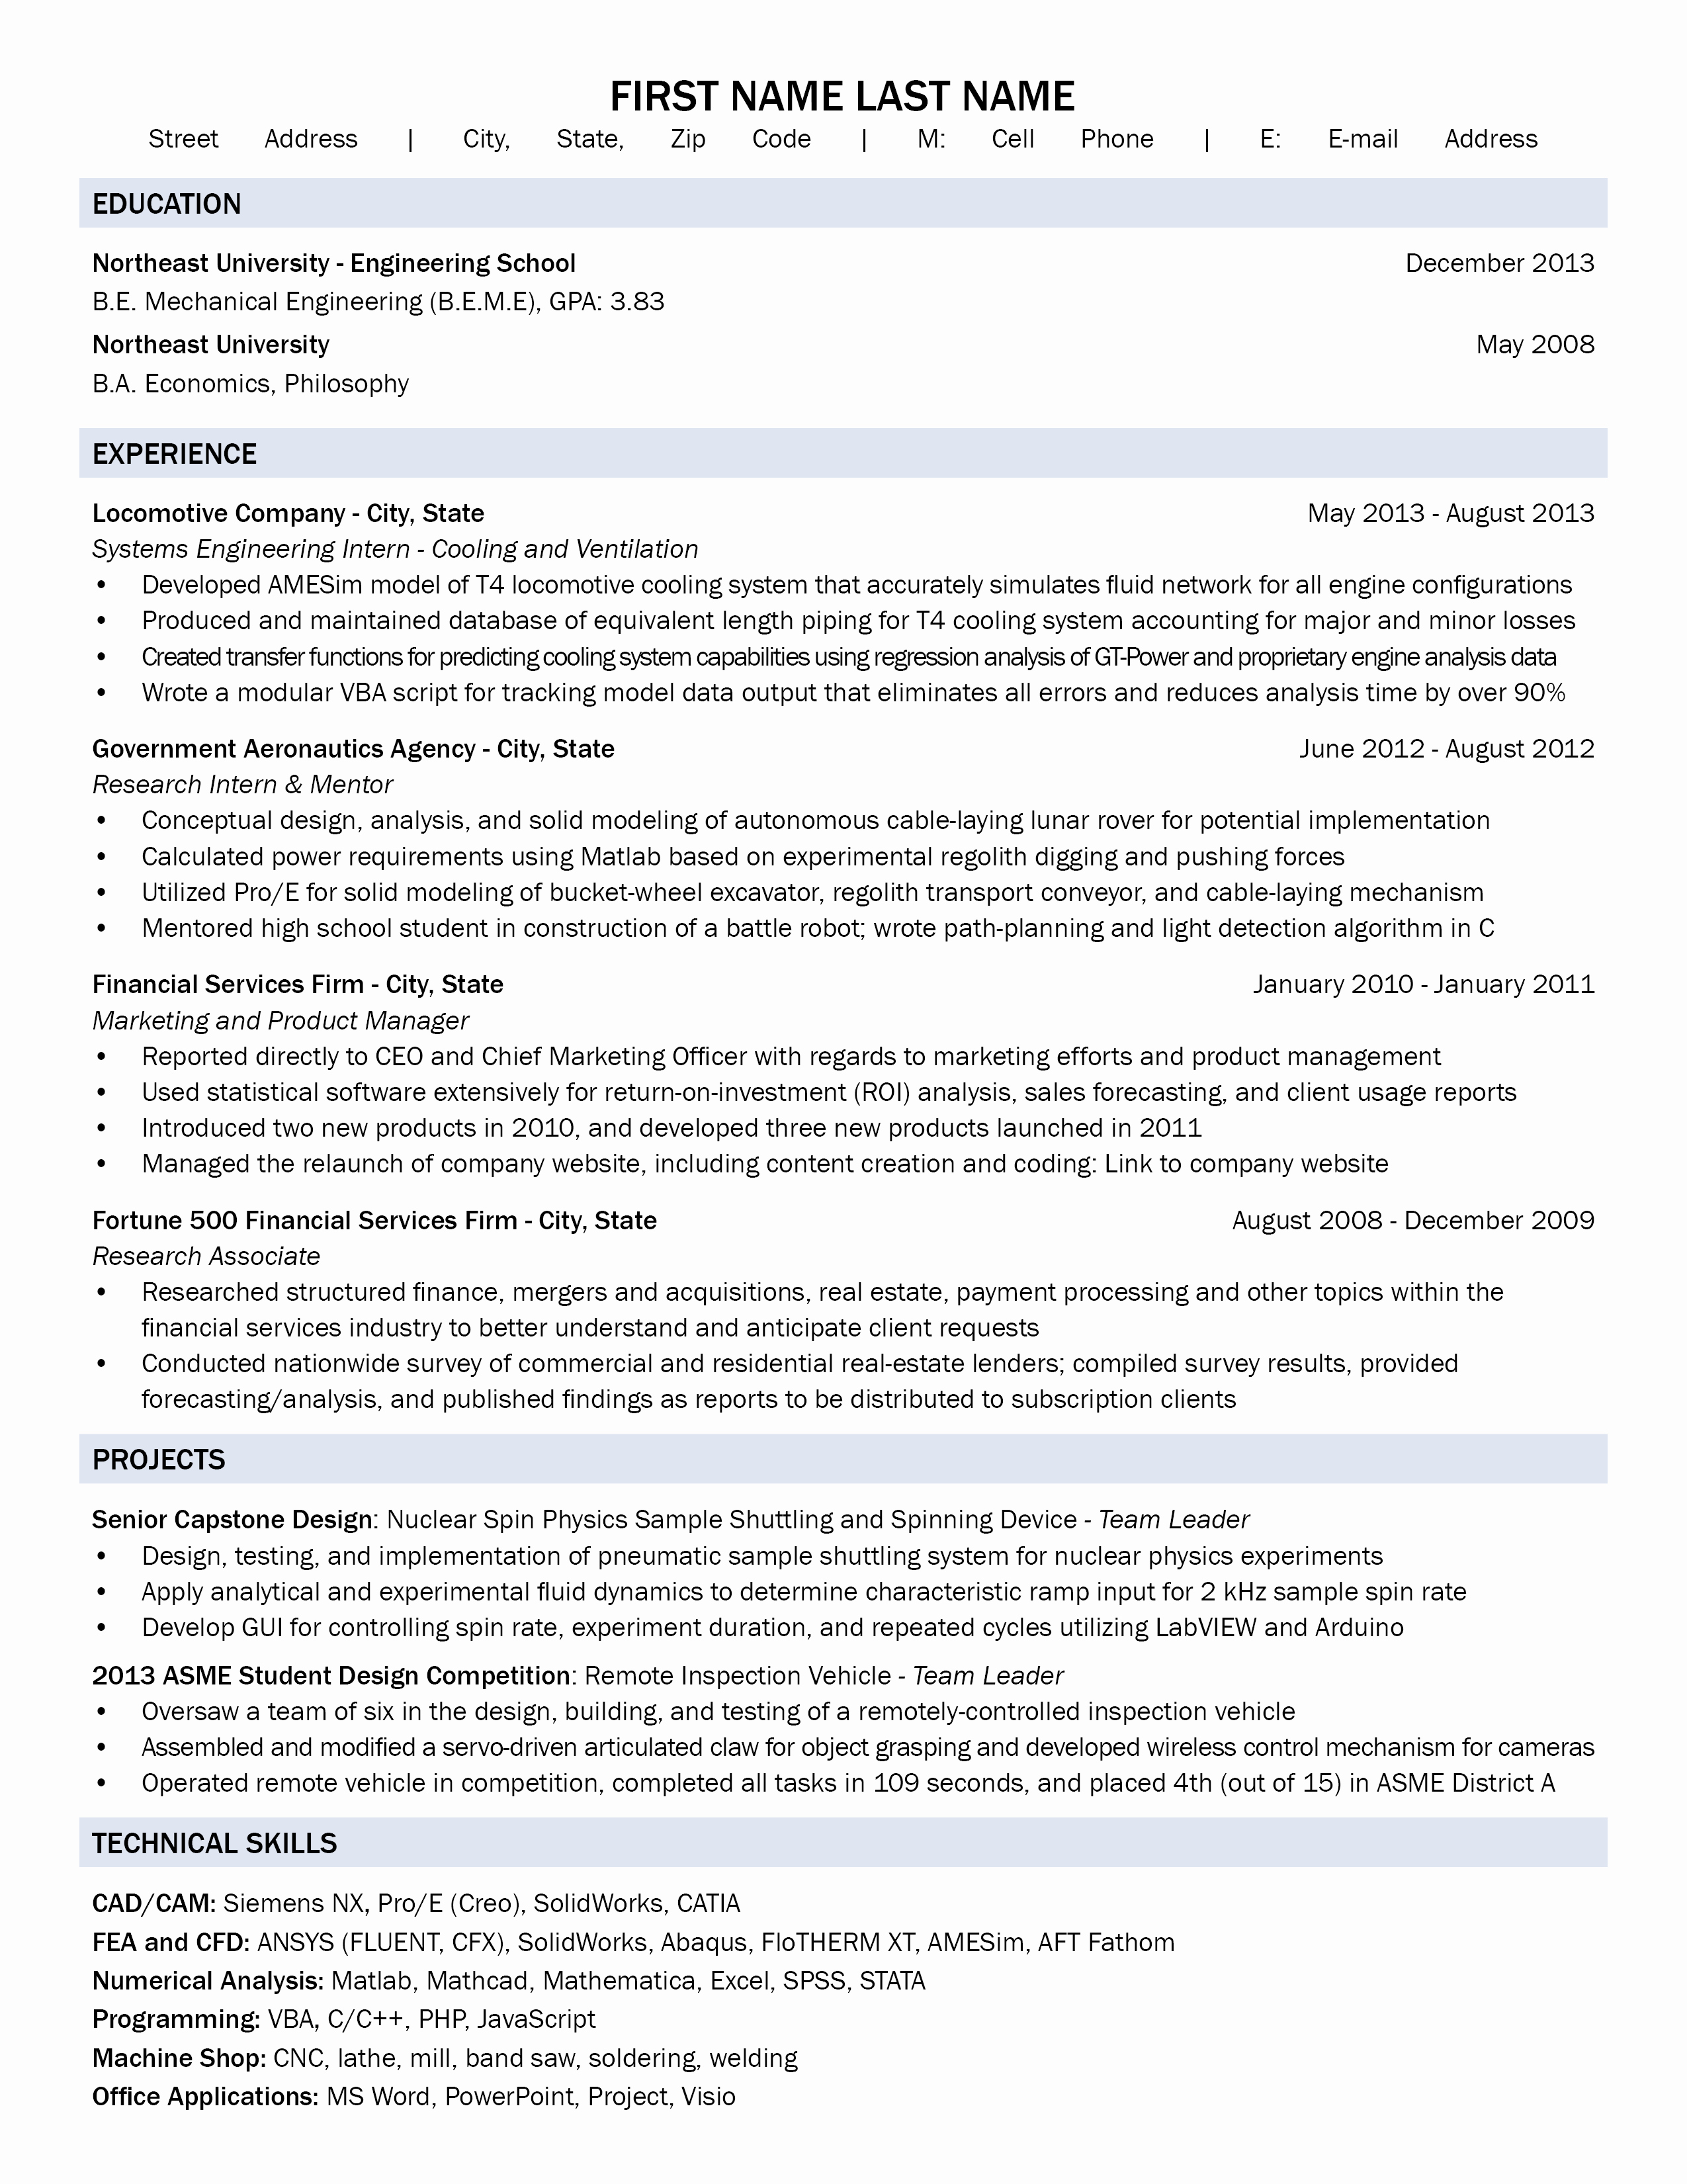 Entry Level Mechanical Engineer with Previous Career